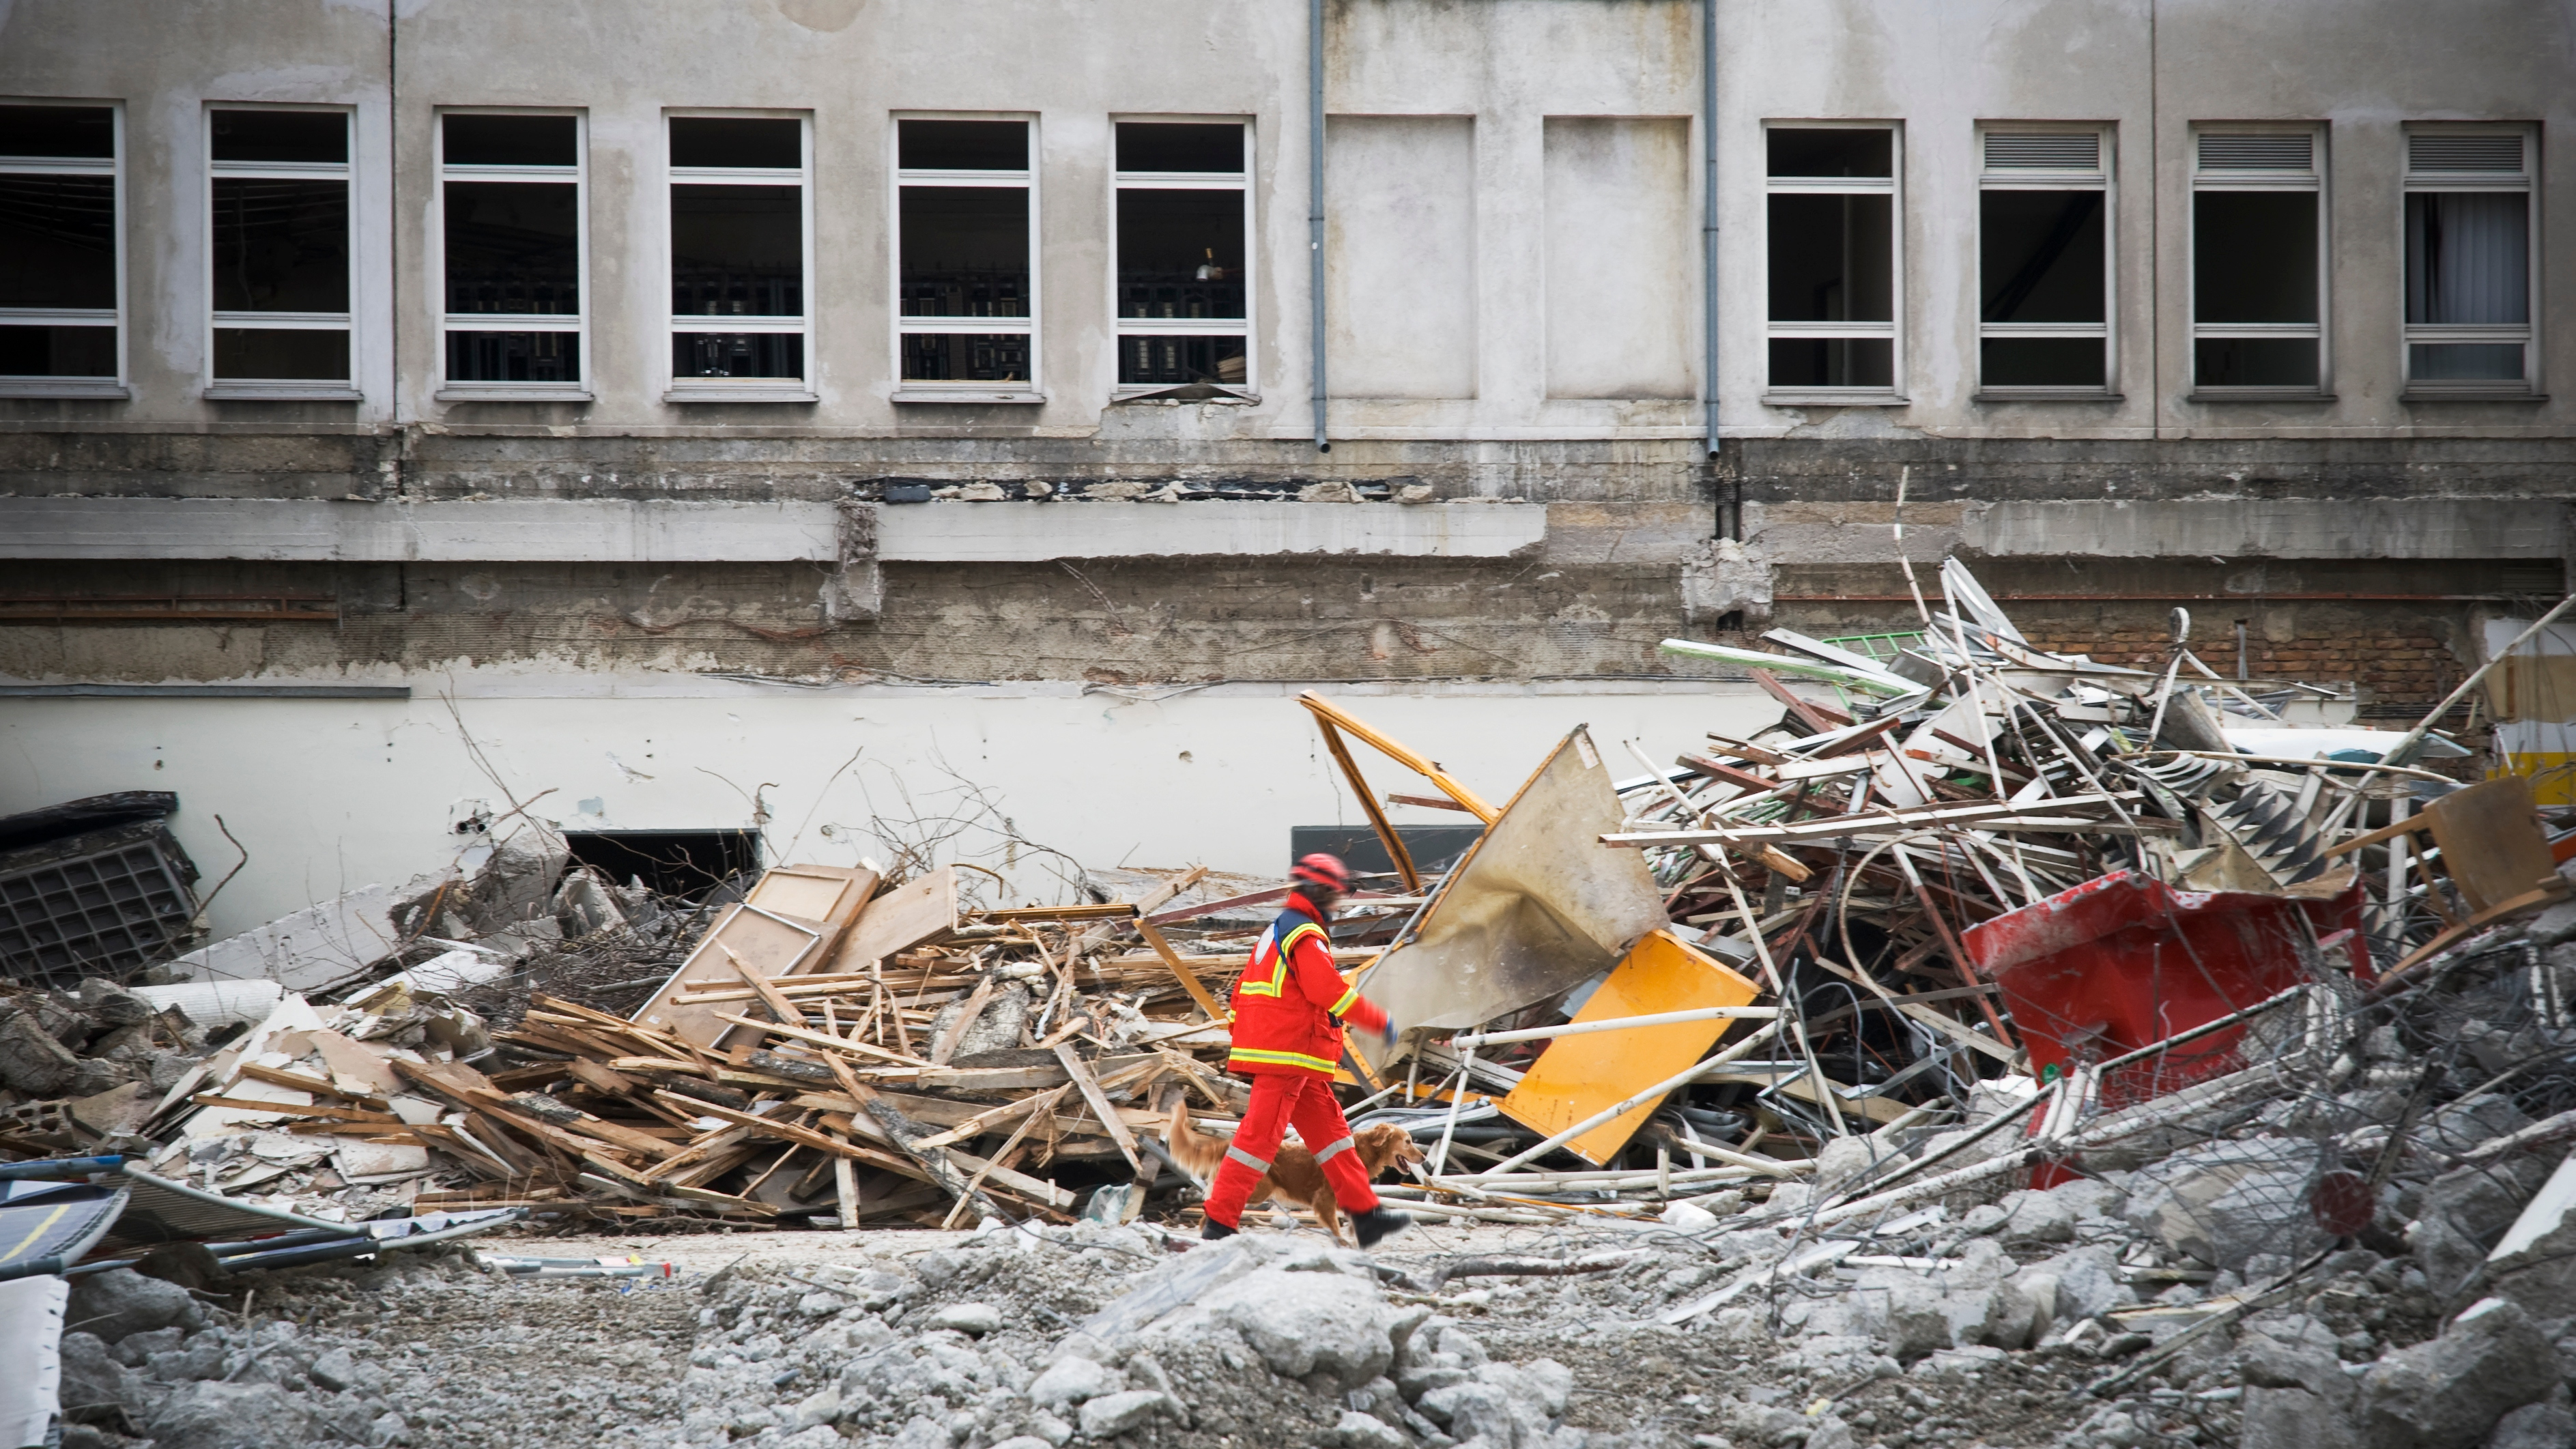 rescue man with dog searching for humans in a destroyed building